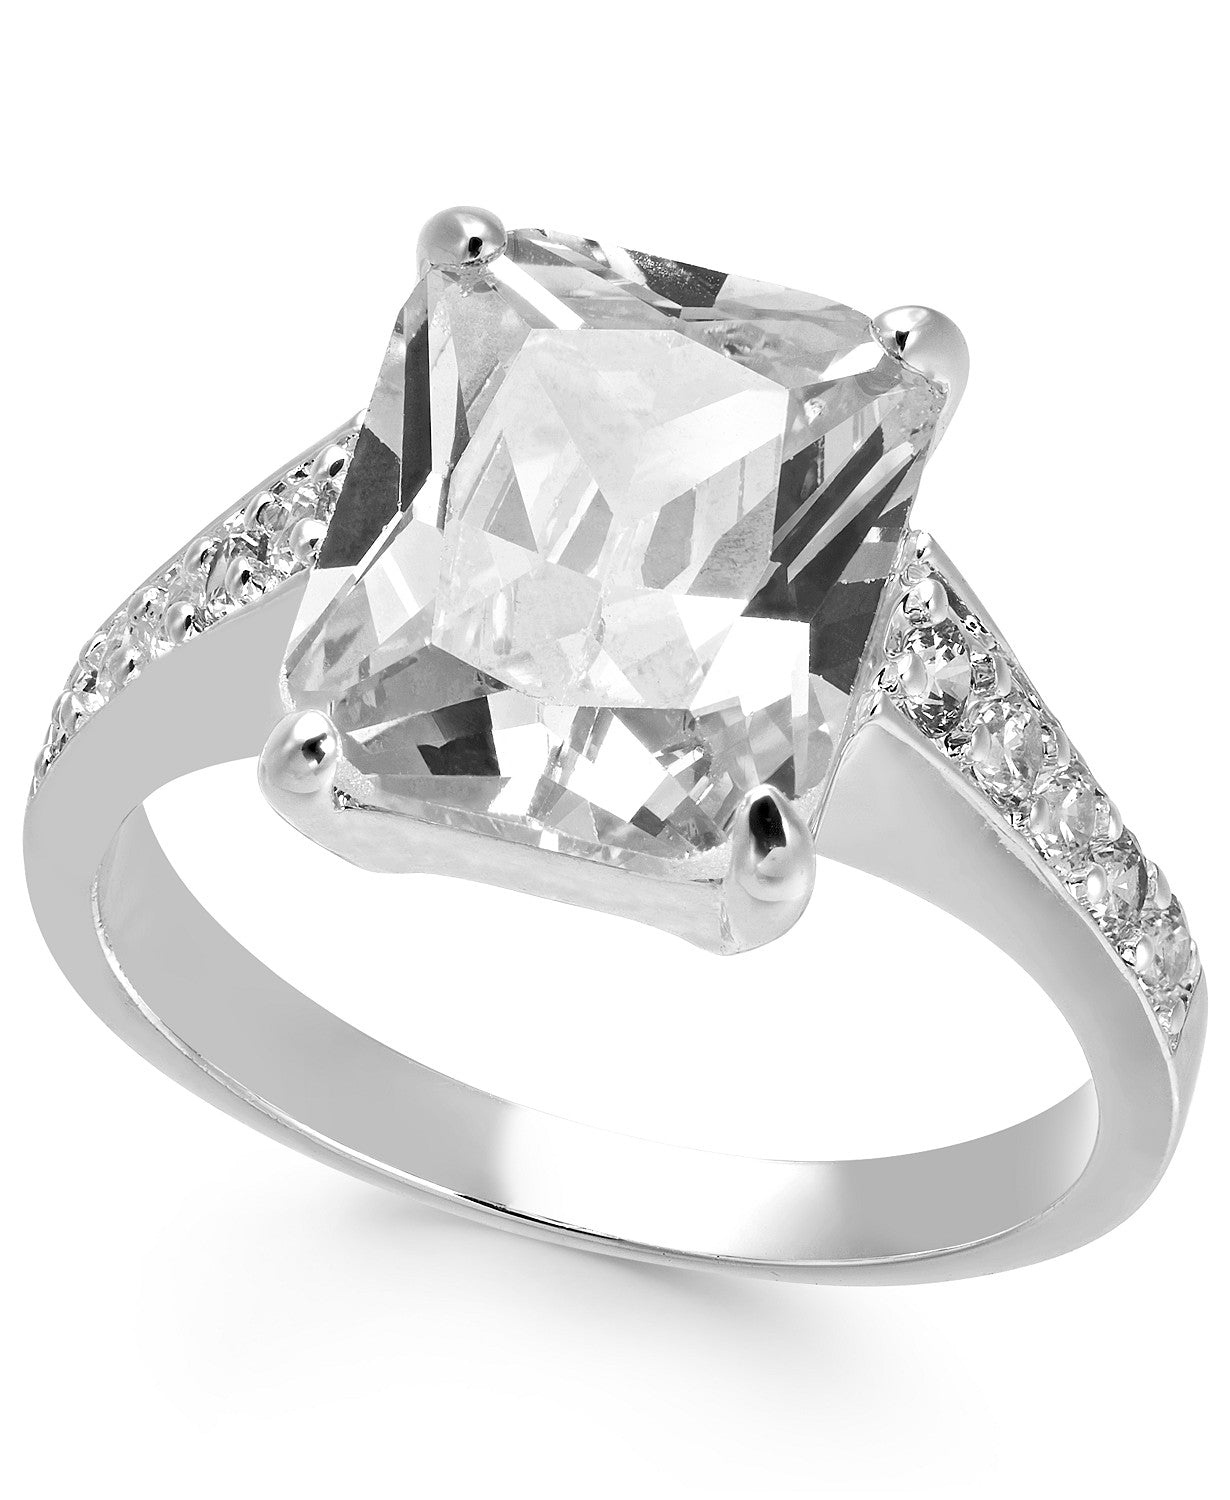 Charter Club Silver-Tone Square Crystal Band Ring,